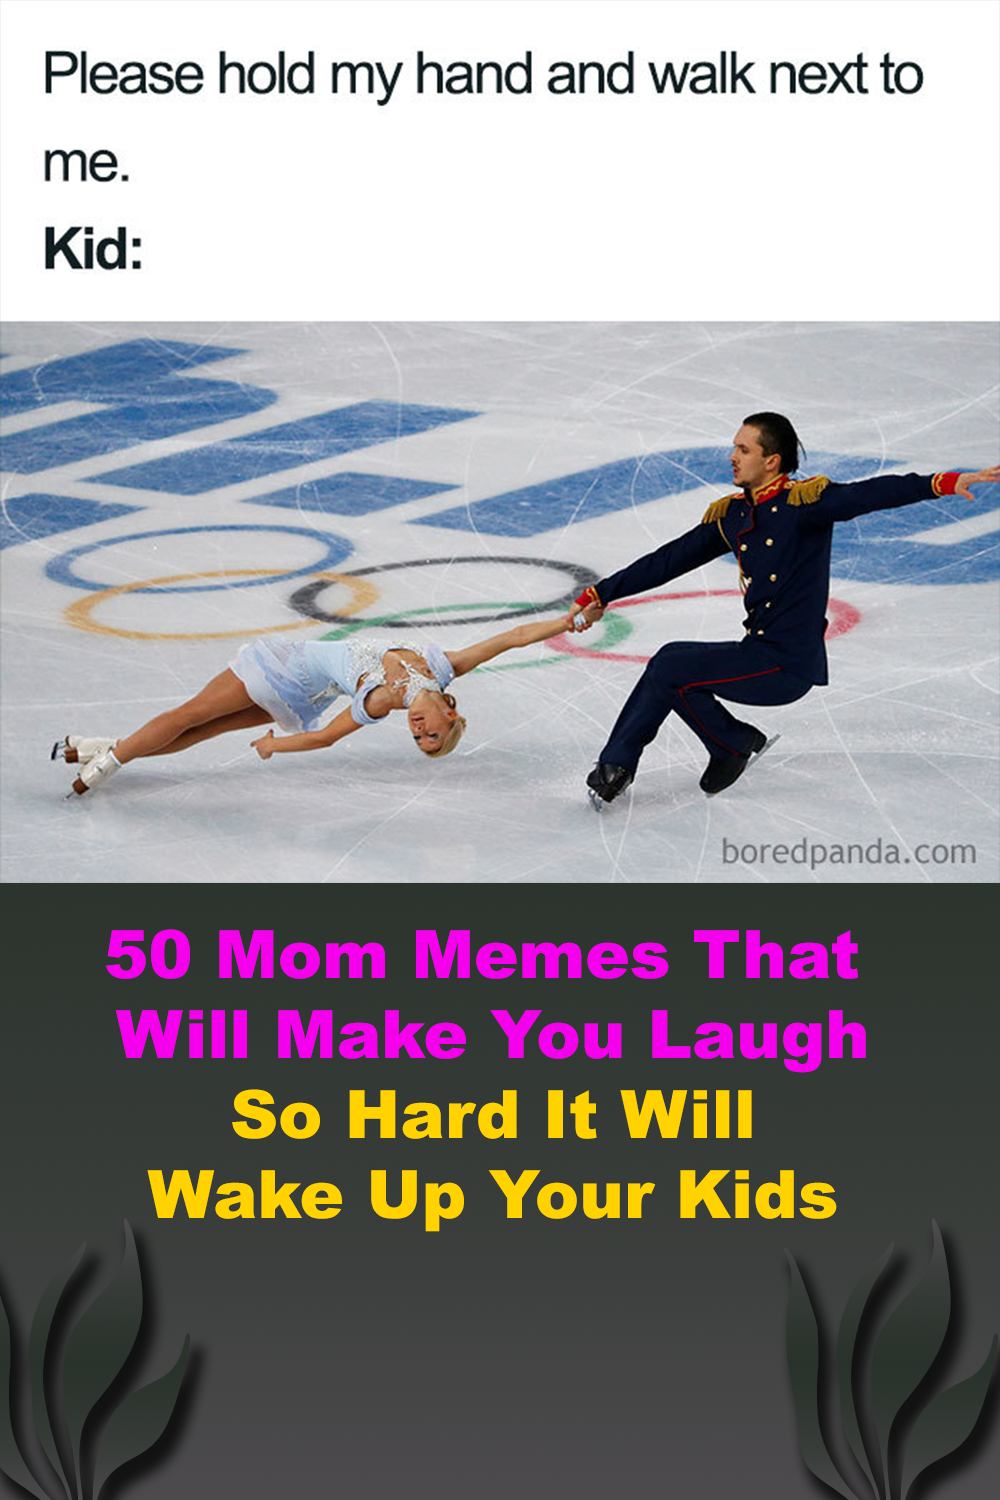 50 Mom Memes That Will Make You Laugh So Hard It Will Wake